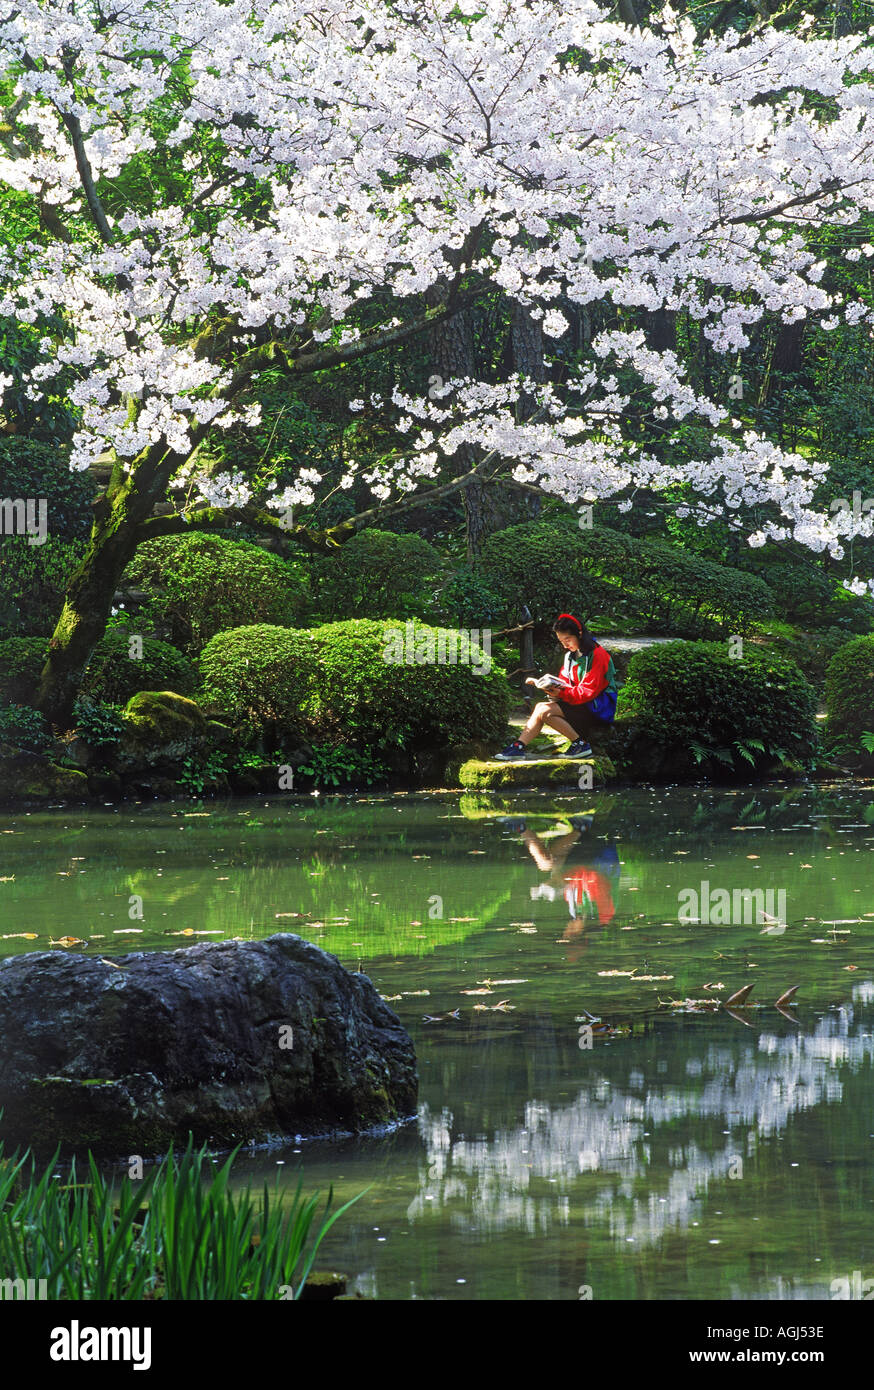 Japanese girl seated next to pond reading a book under cherry blossoms in Kyoto park in spring - Stock Image